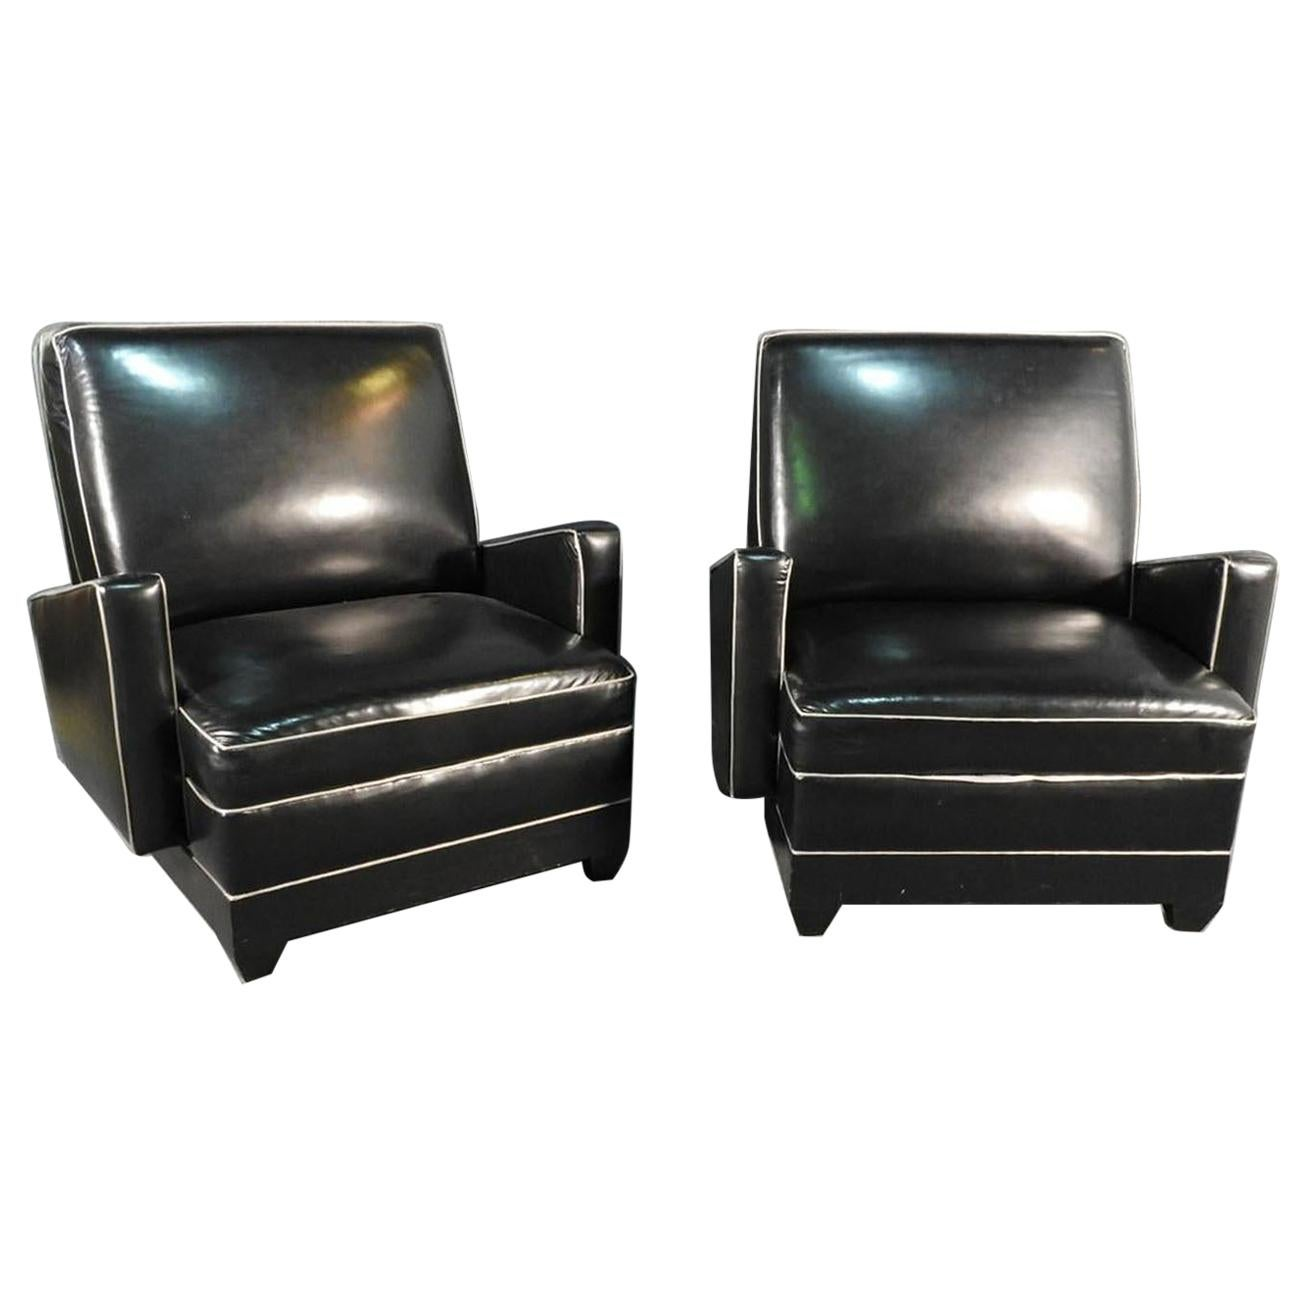 Paul Frankl Style Oversized Black and gray Art Deco Style Club Chairs